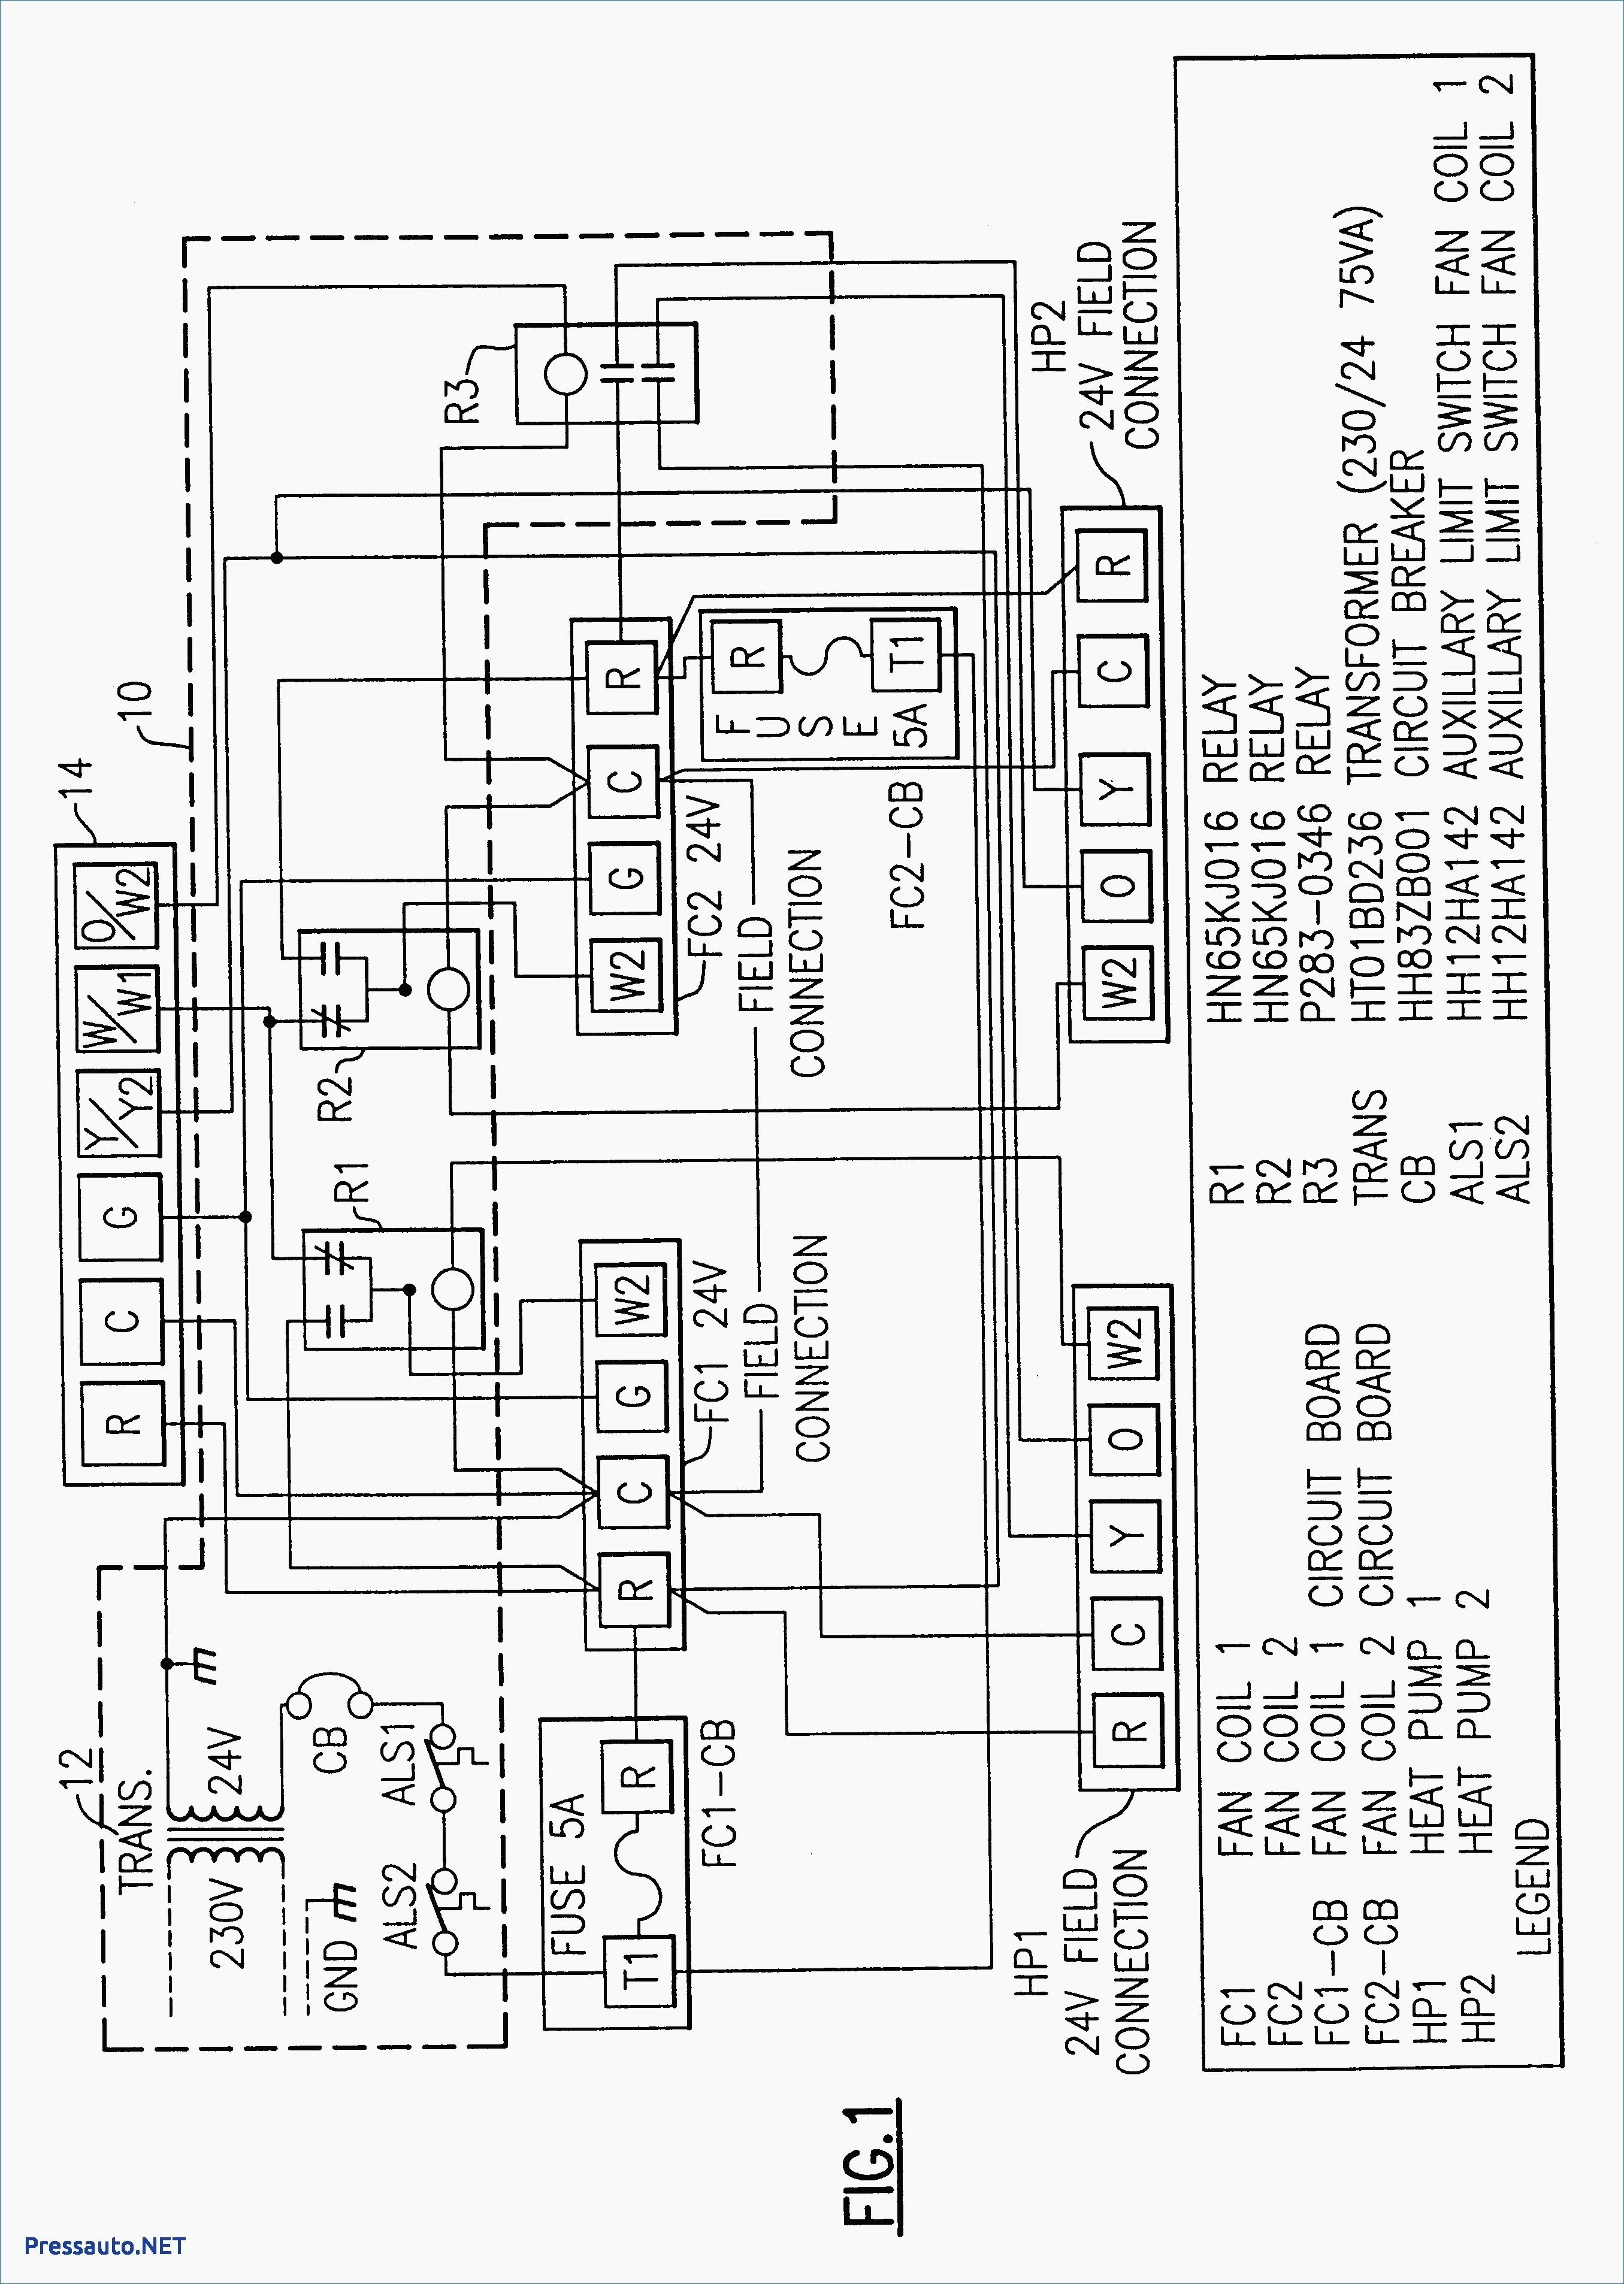 york furnace wiring diagram home electrical in india optiview great installation of yst chiller rh yoga neuwied de gas schematic